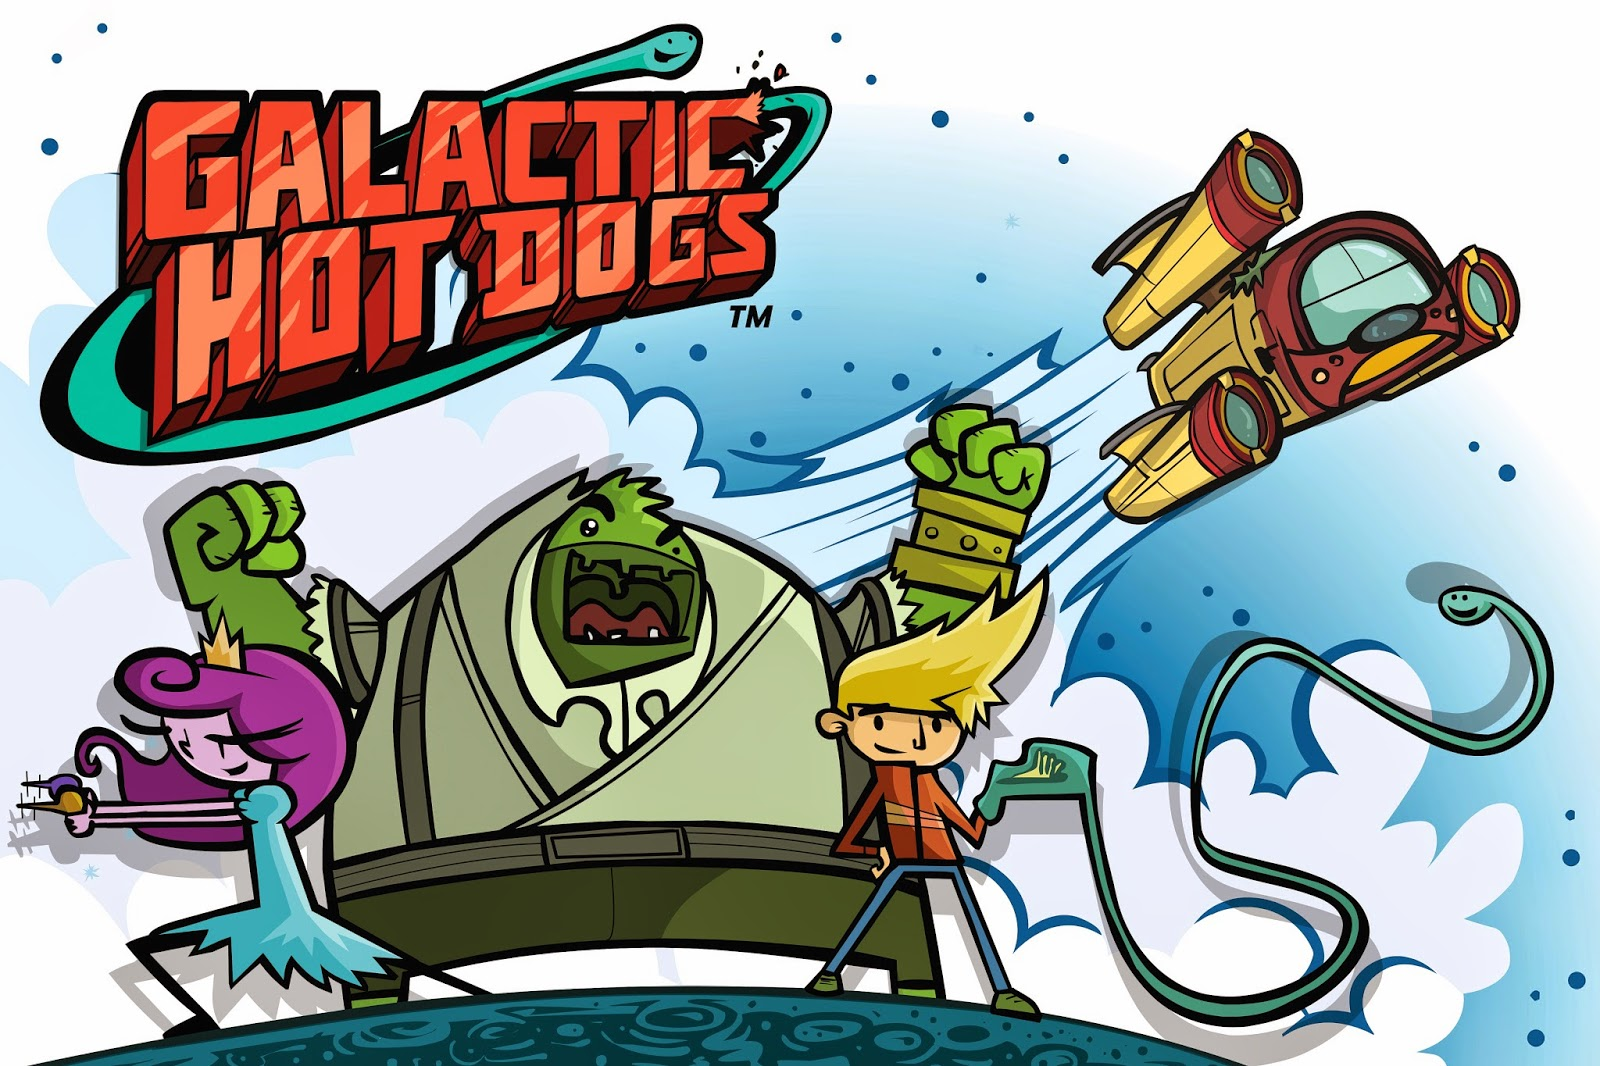 Free Galactic Hot Dogs poster for computer wallpaper